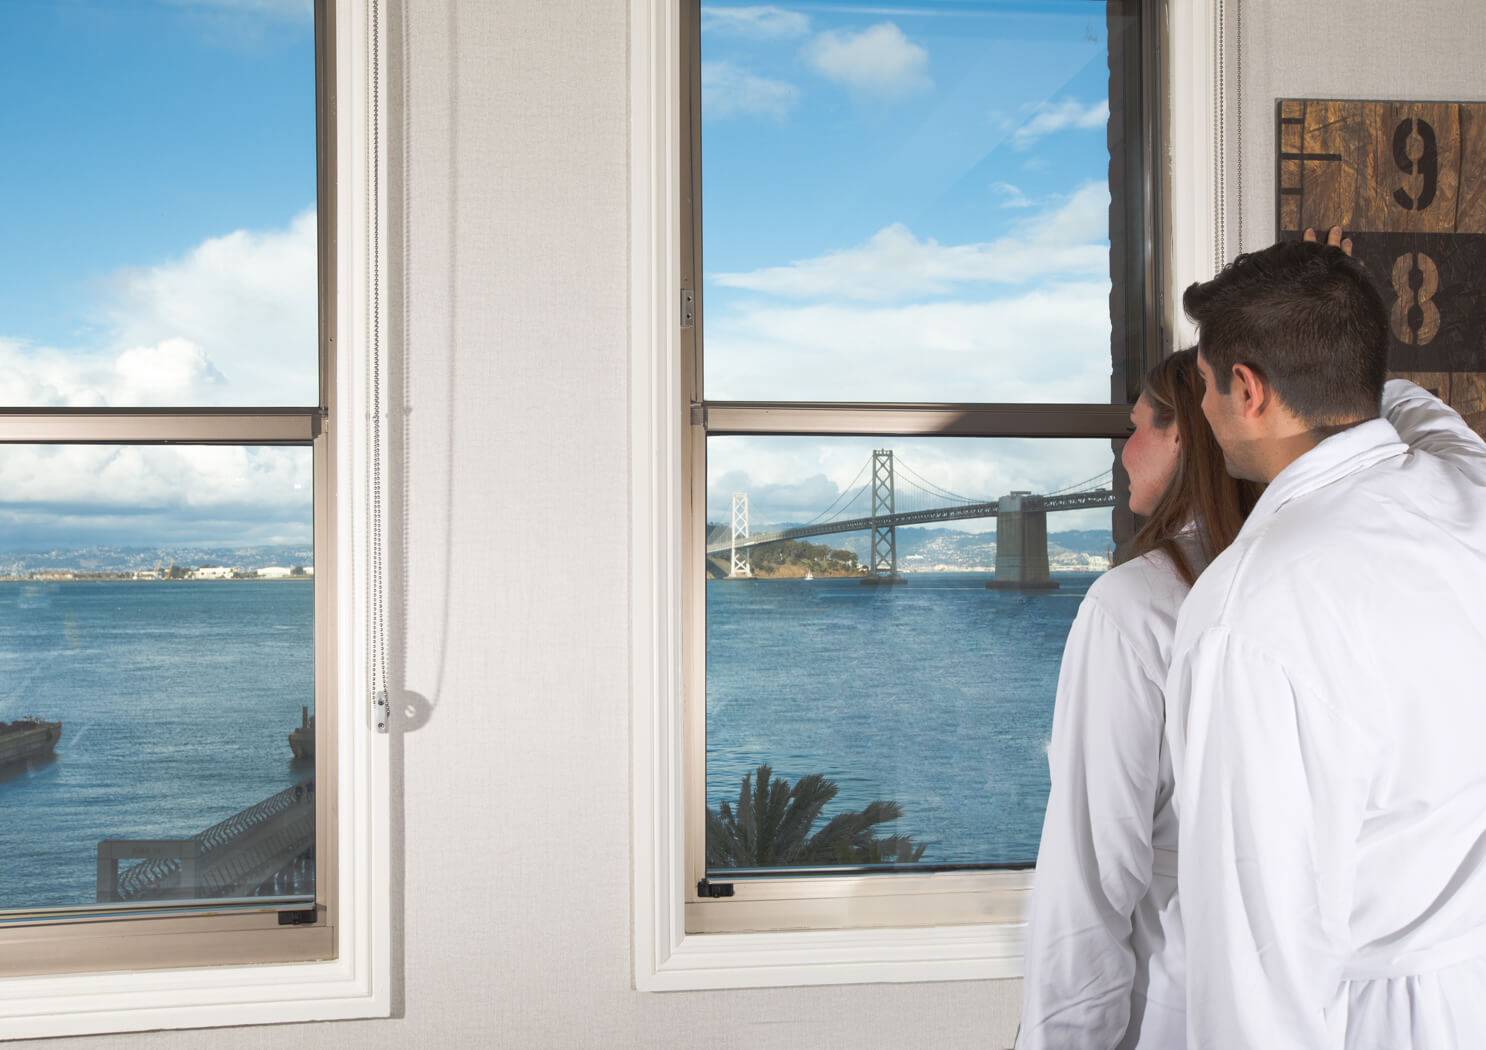 Couple in robes looking out the window at the San Francisco Bay